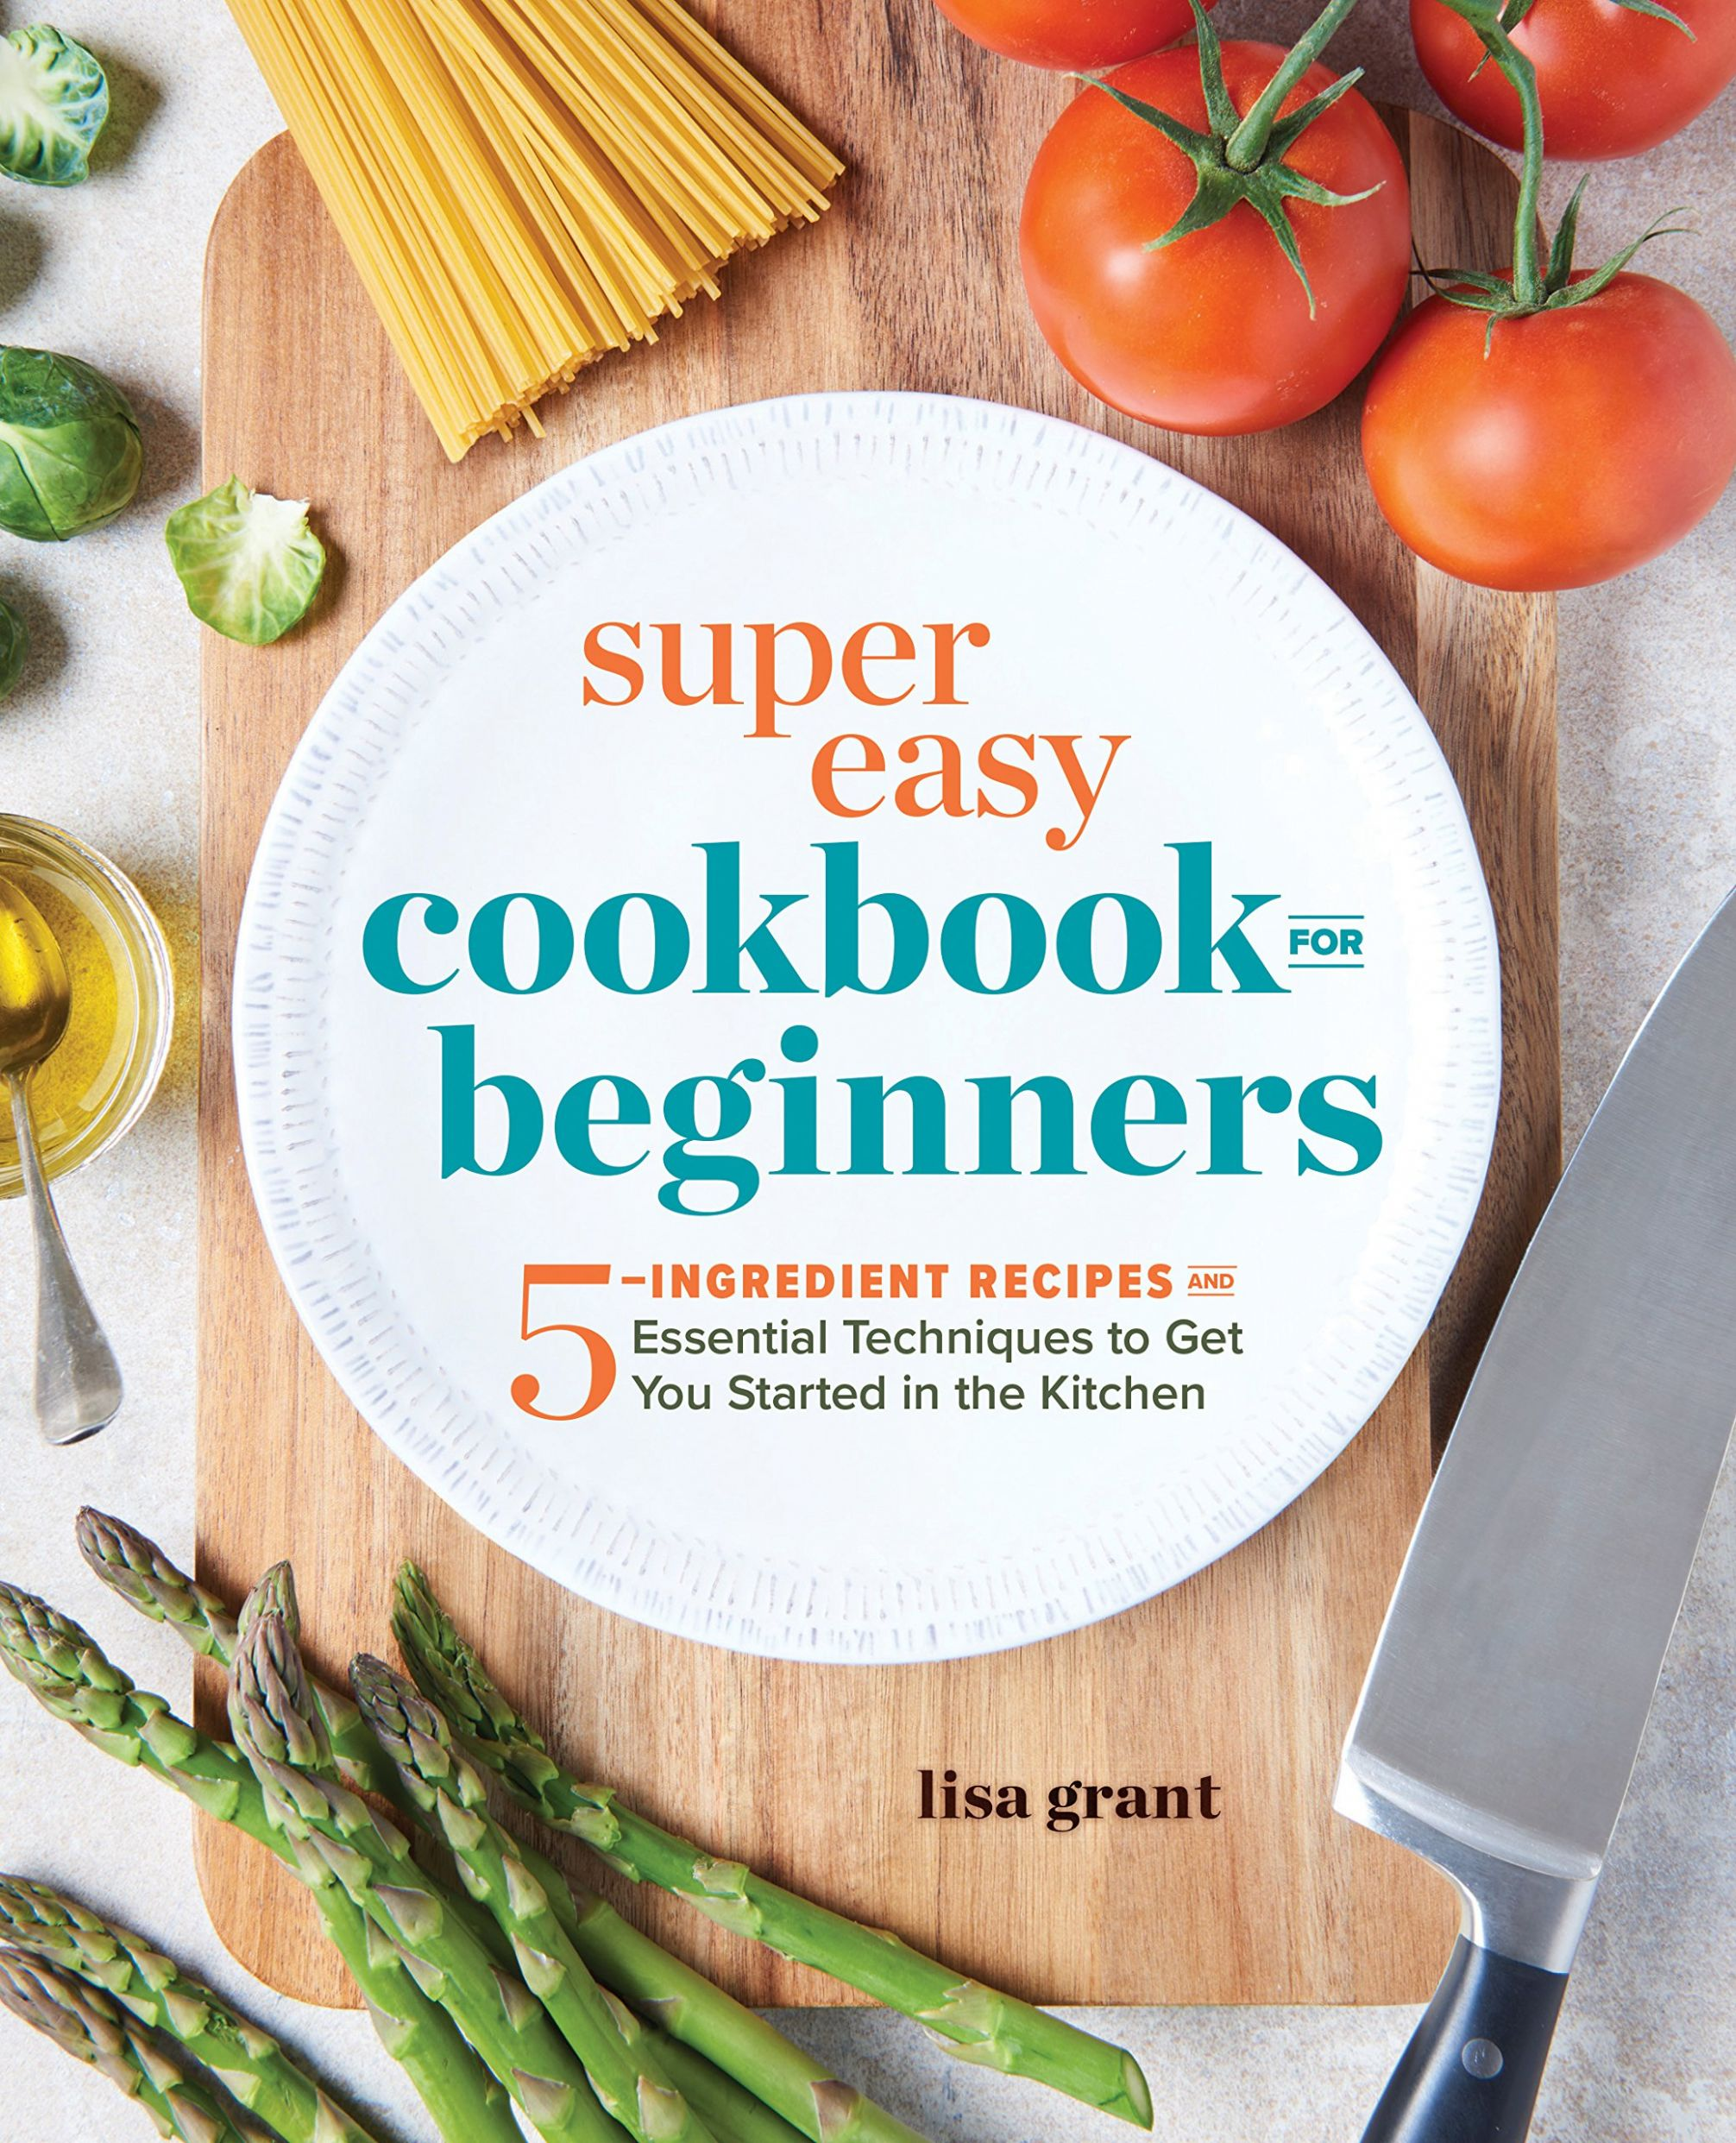 Super Easy Cookbook for Beginners: 12-Ingredient Recipes and ...